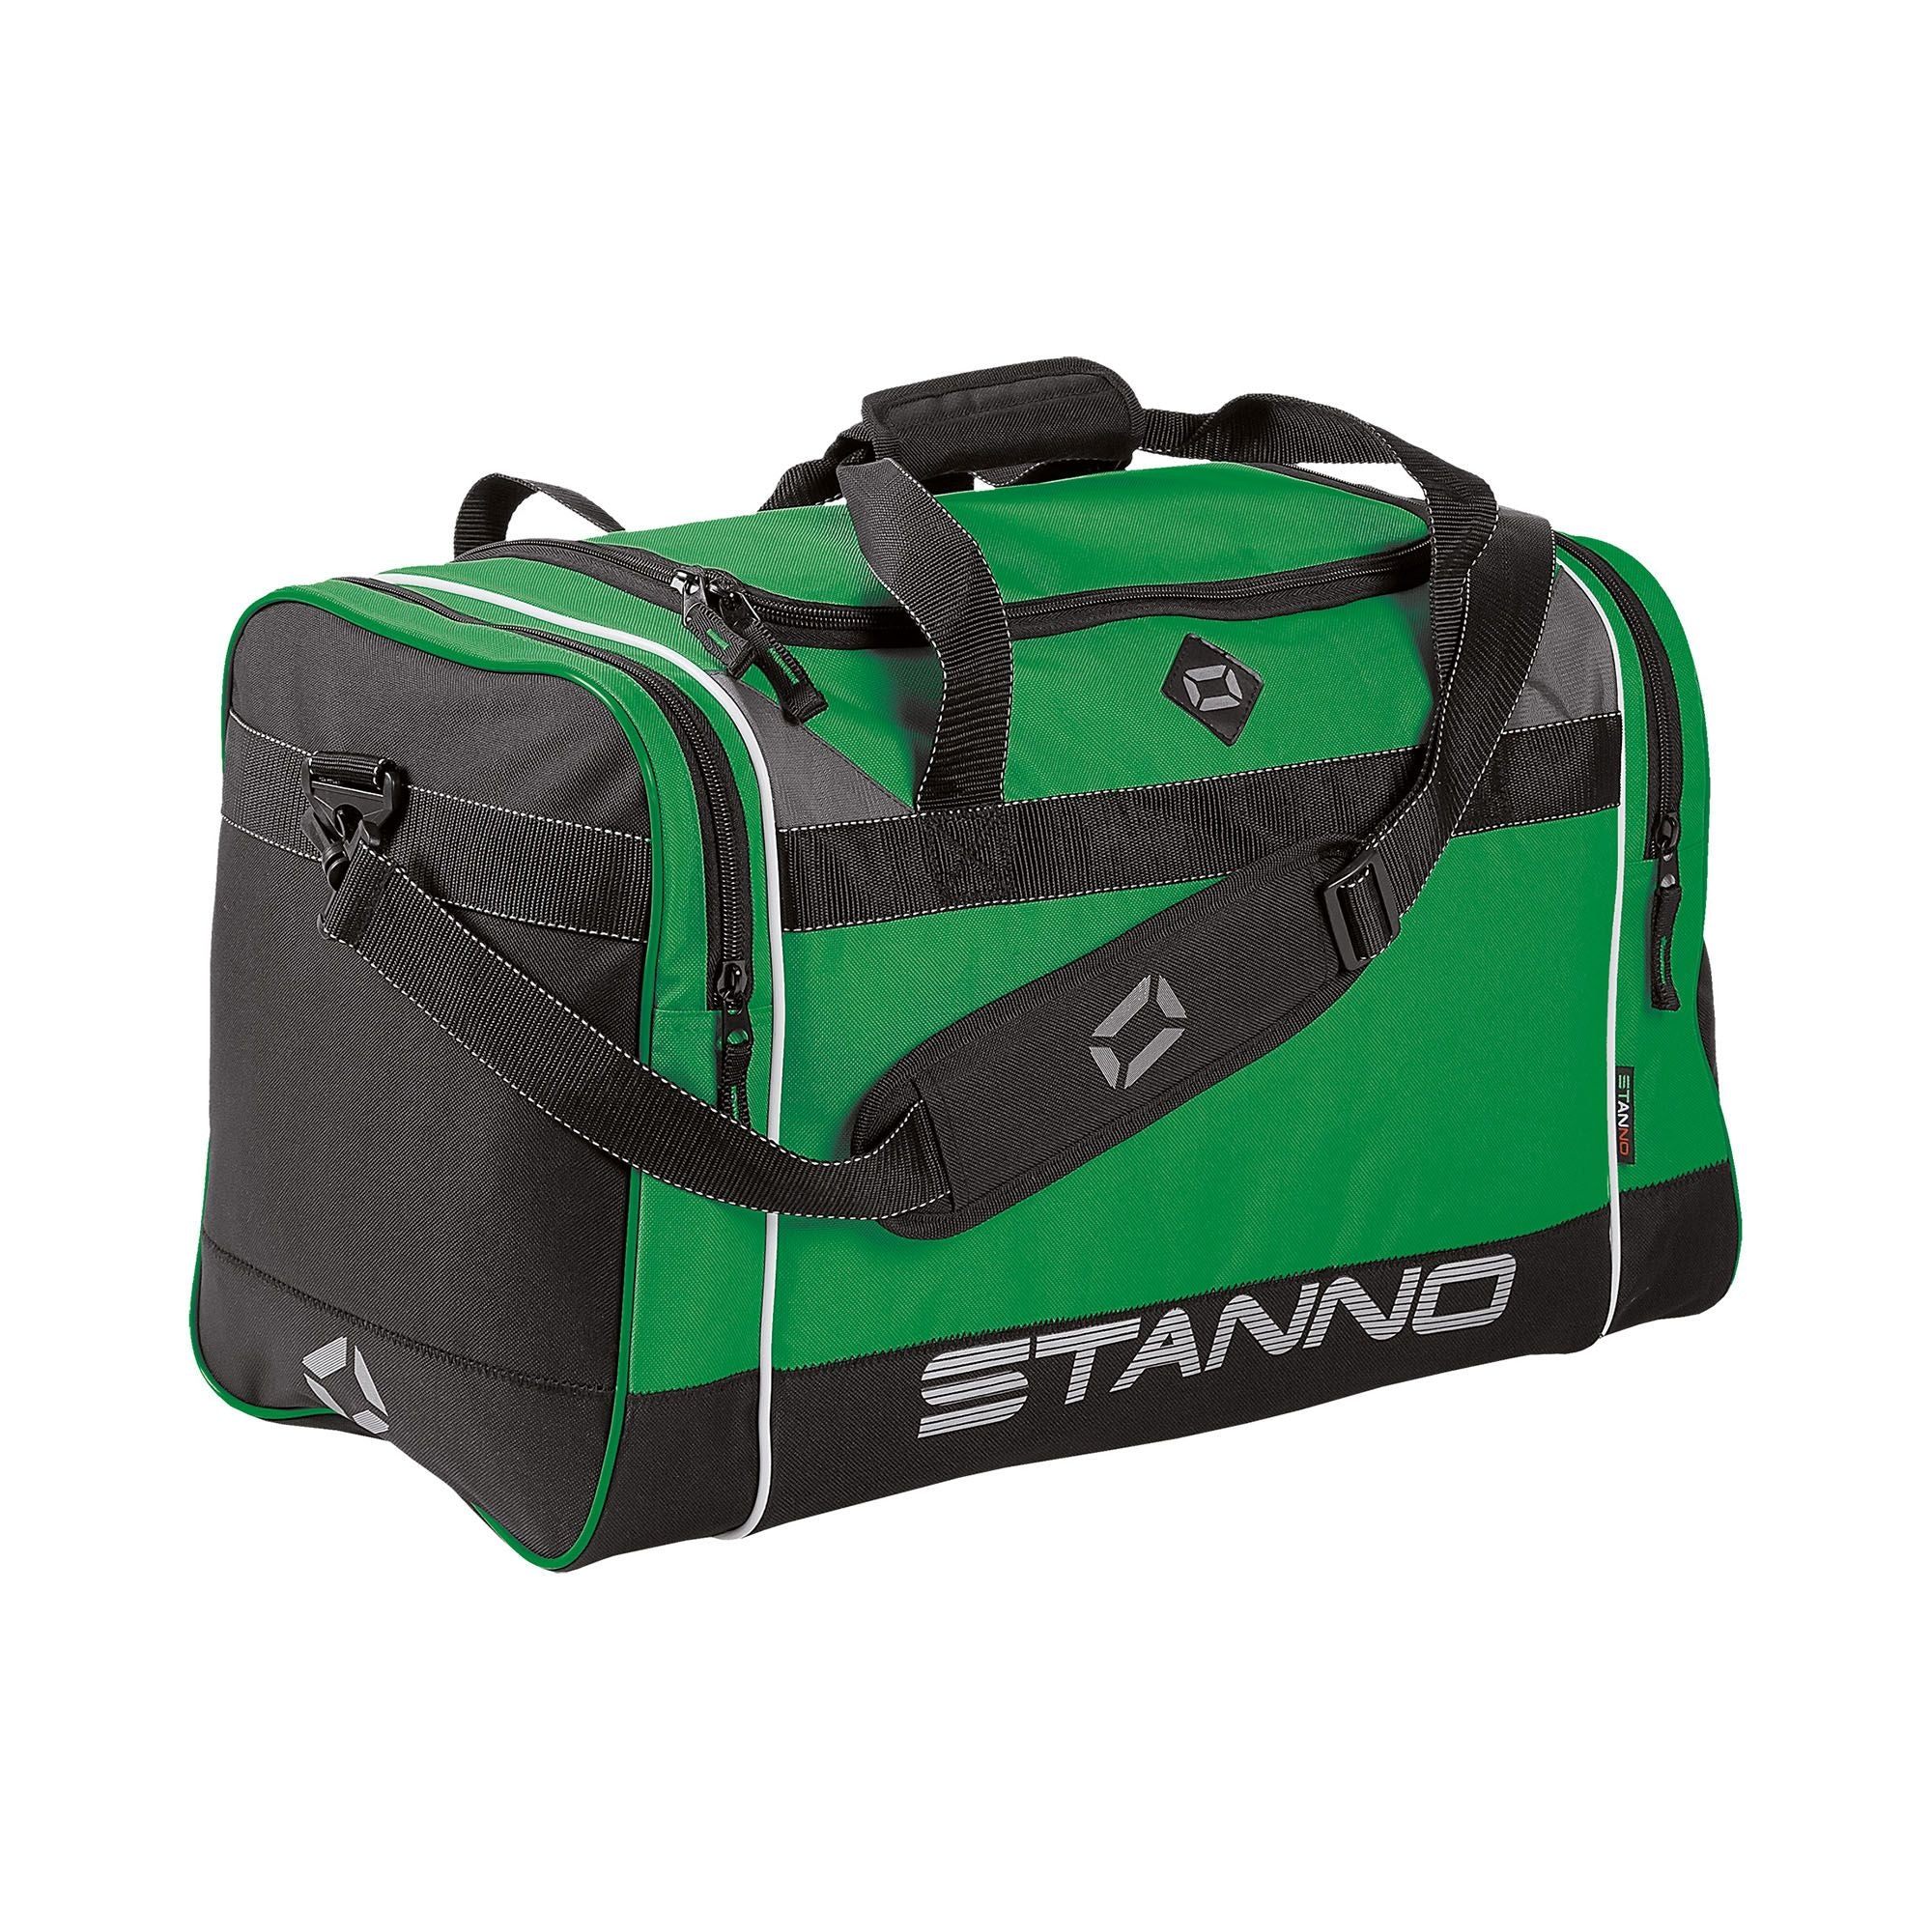 Stanno Sevilla Excellence sports bag in green with contrast black end panelswith shoulder strap. Large text logo at the bottom of the side panel.